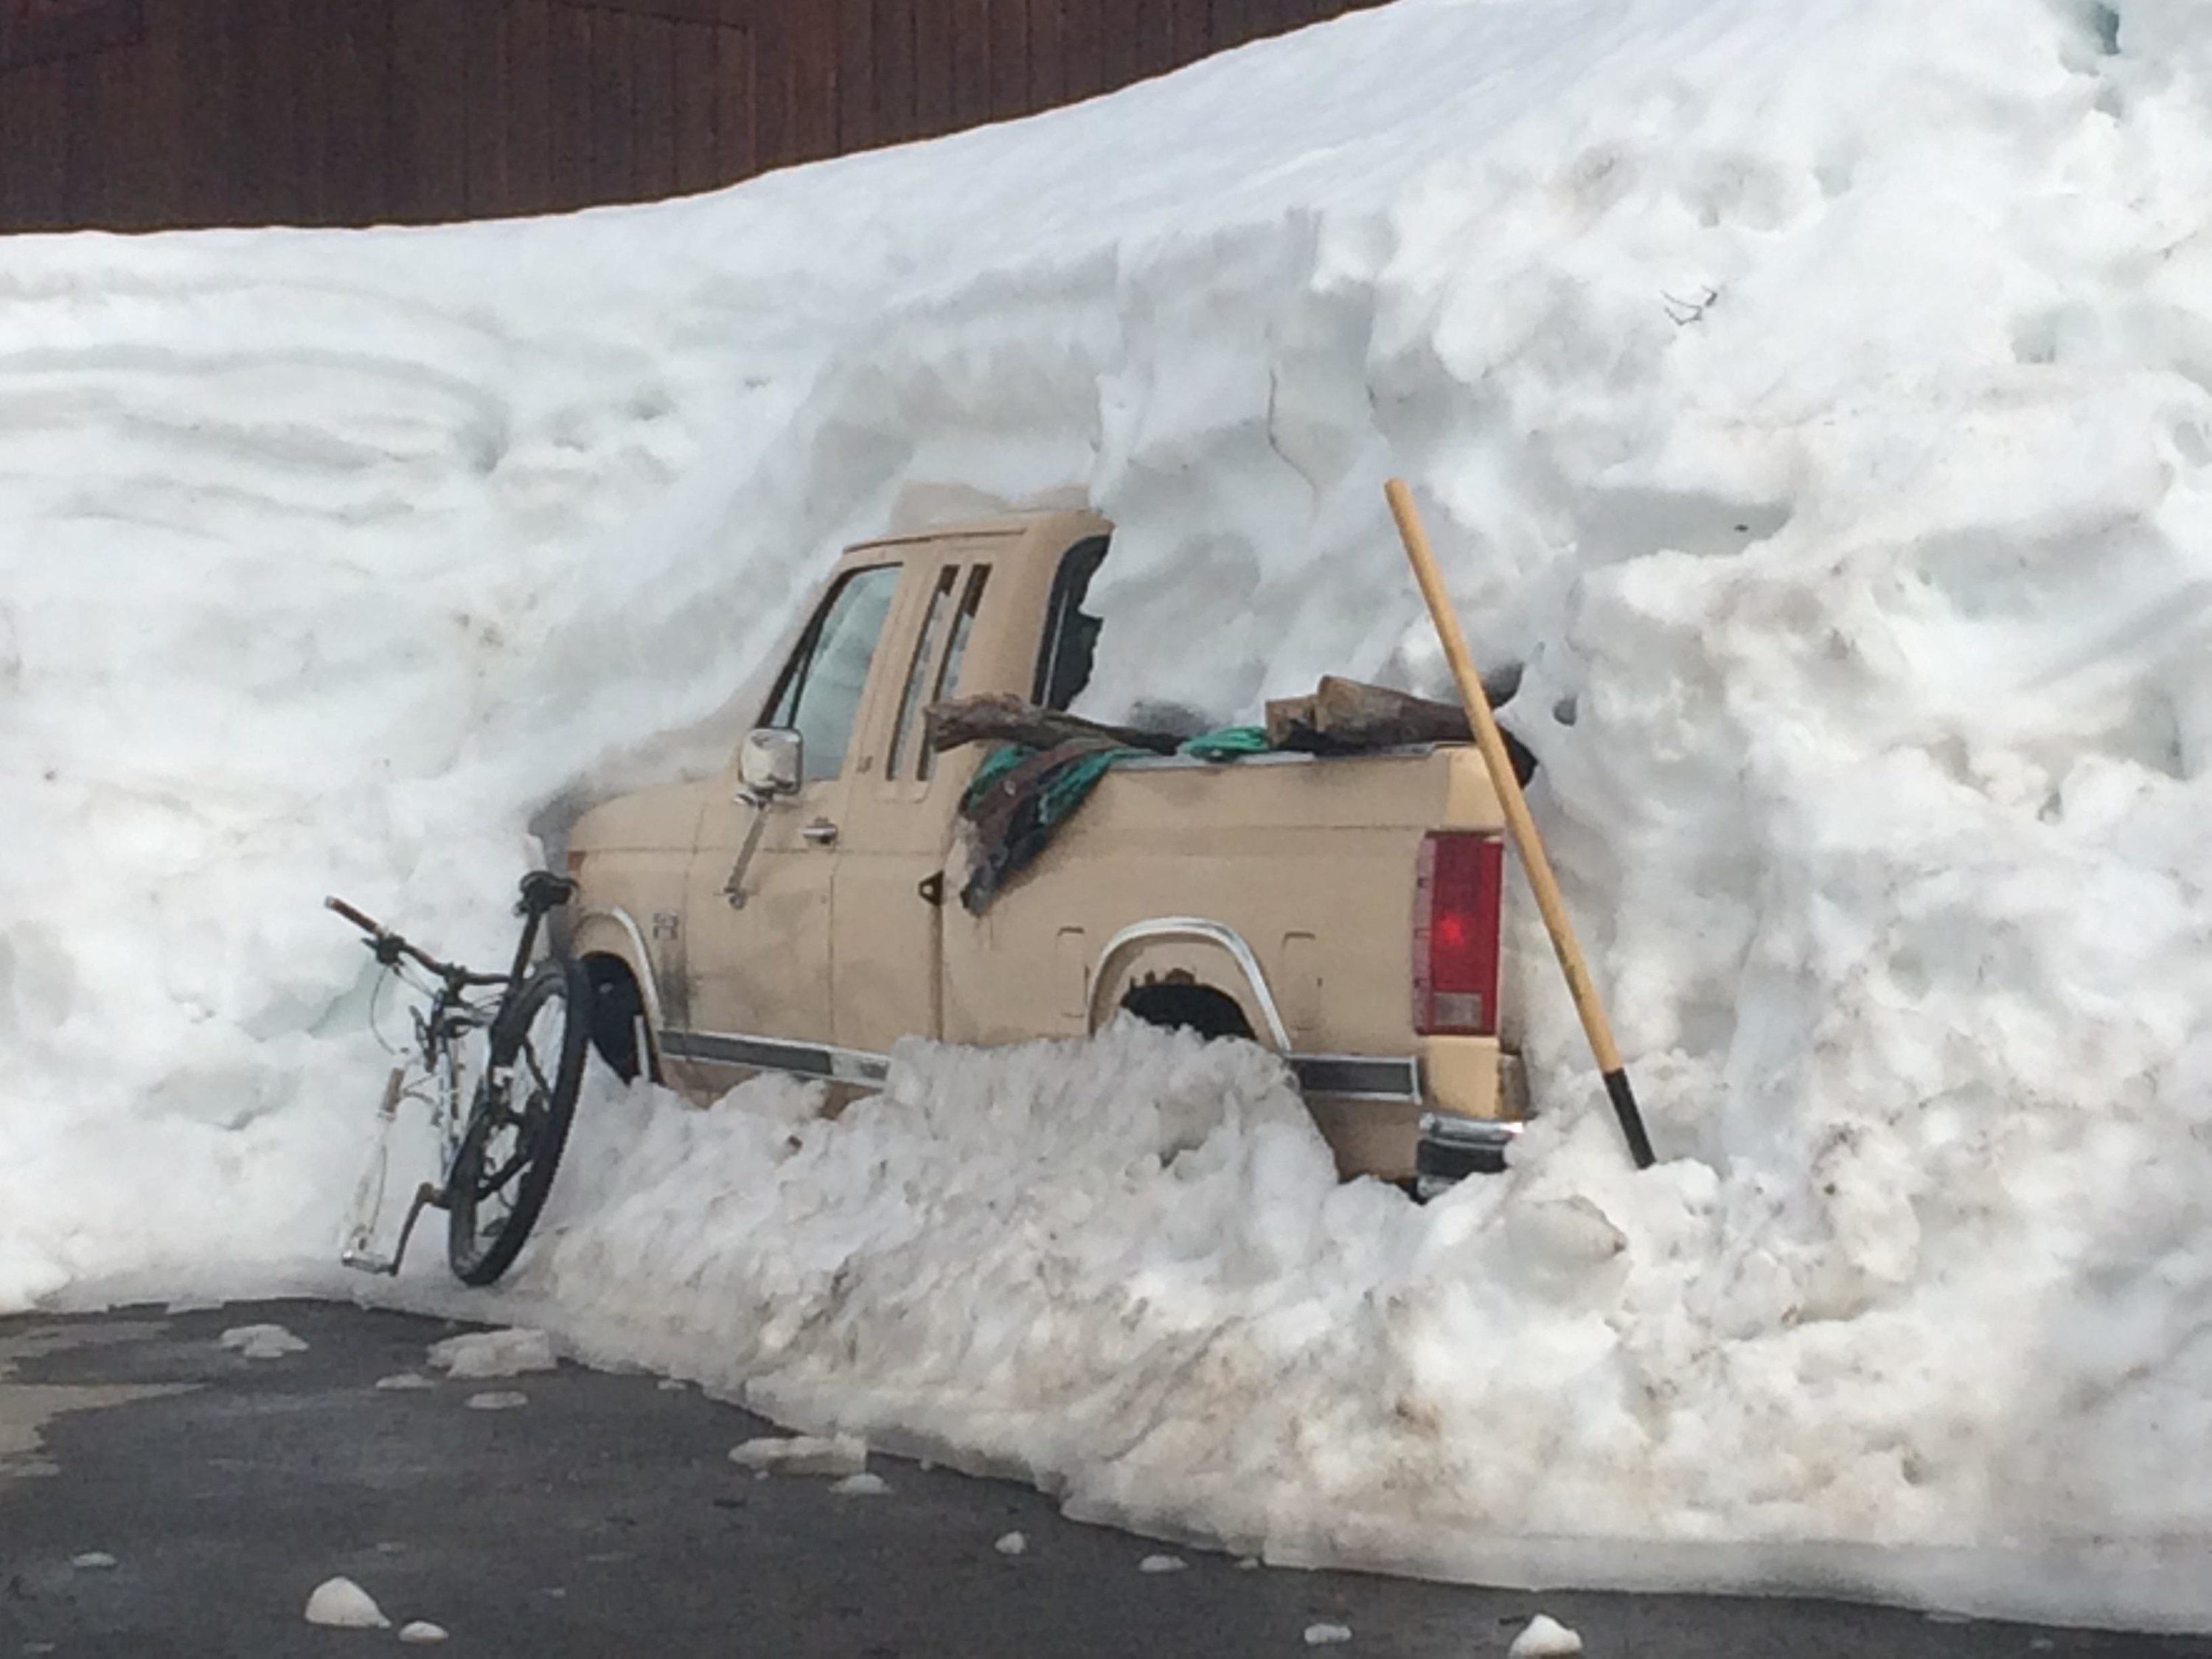 A truck buried deep in snow.